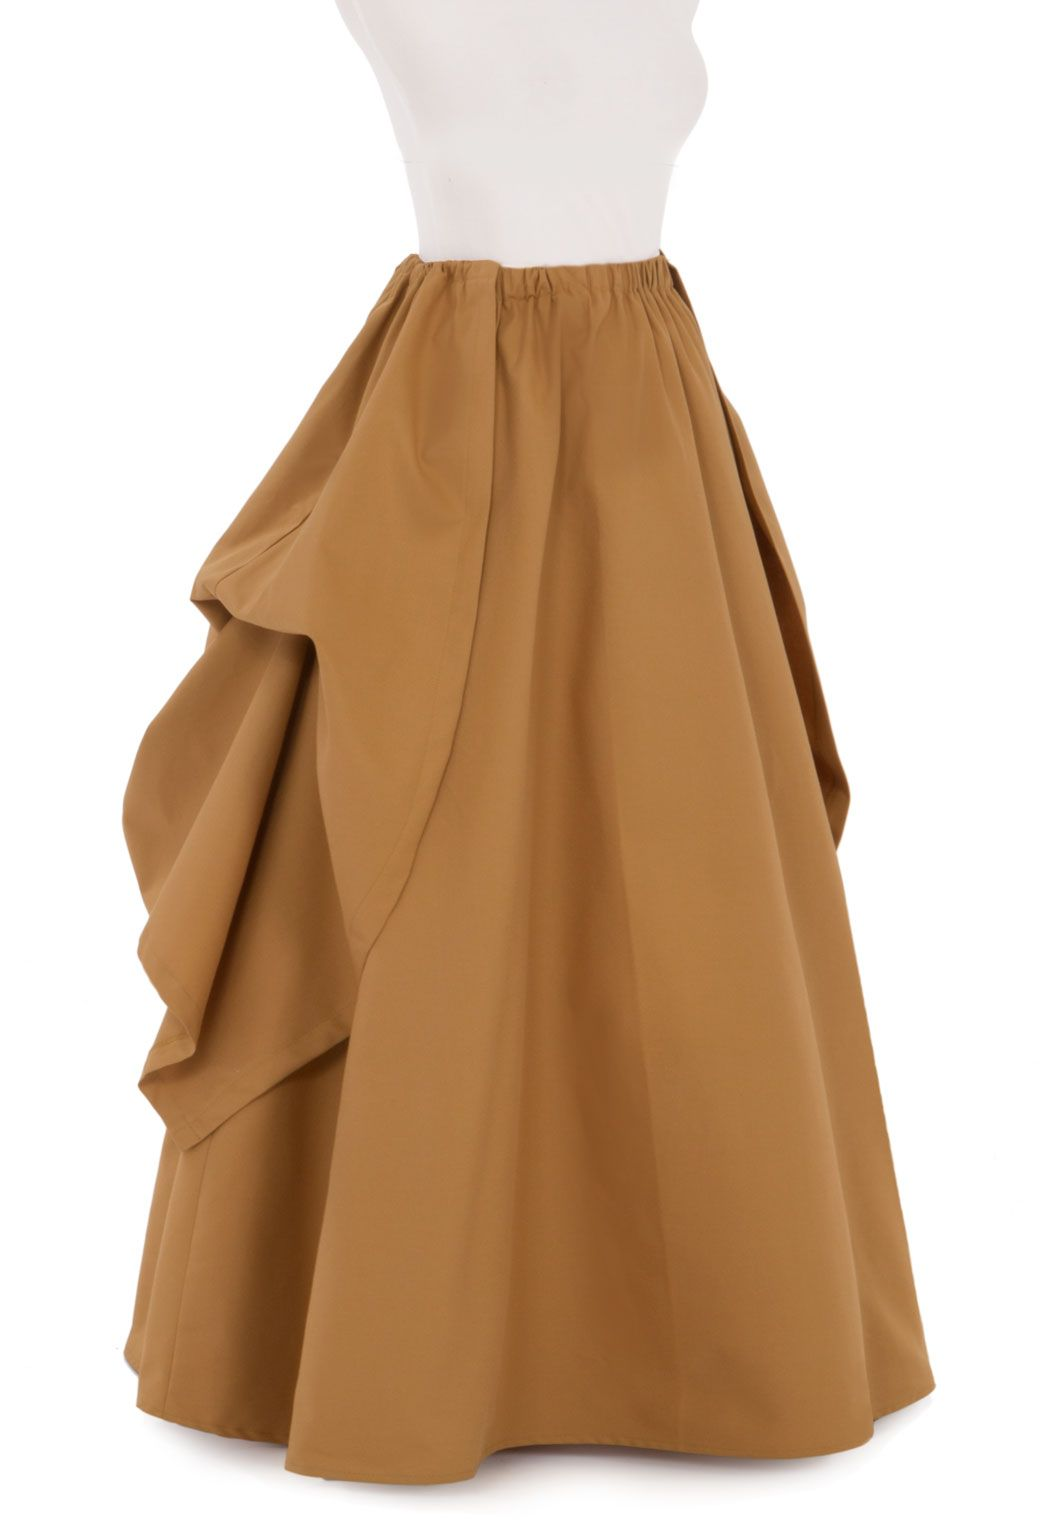 5af37a493 Twill Victorian Style Skirt and Overskirt in Black. Underskirt has elastic  waist, Overskirt has drawstring.